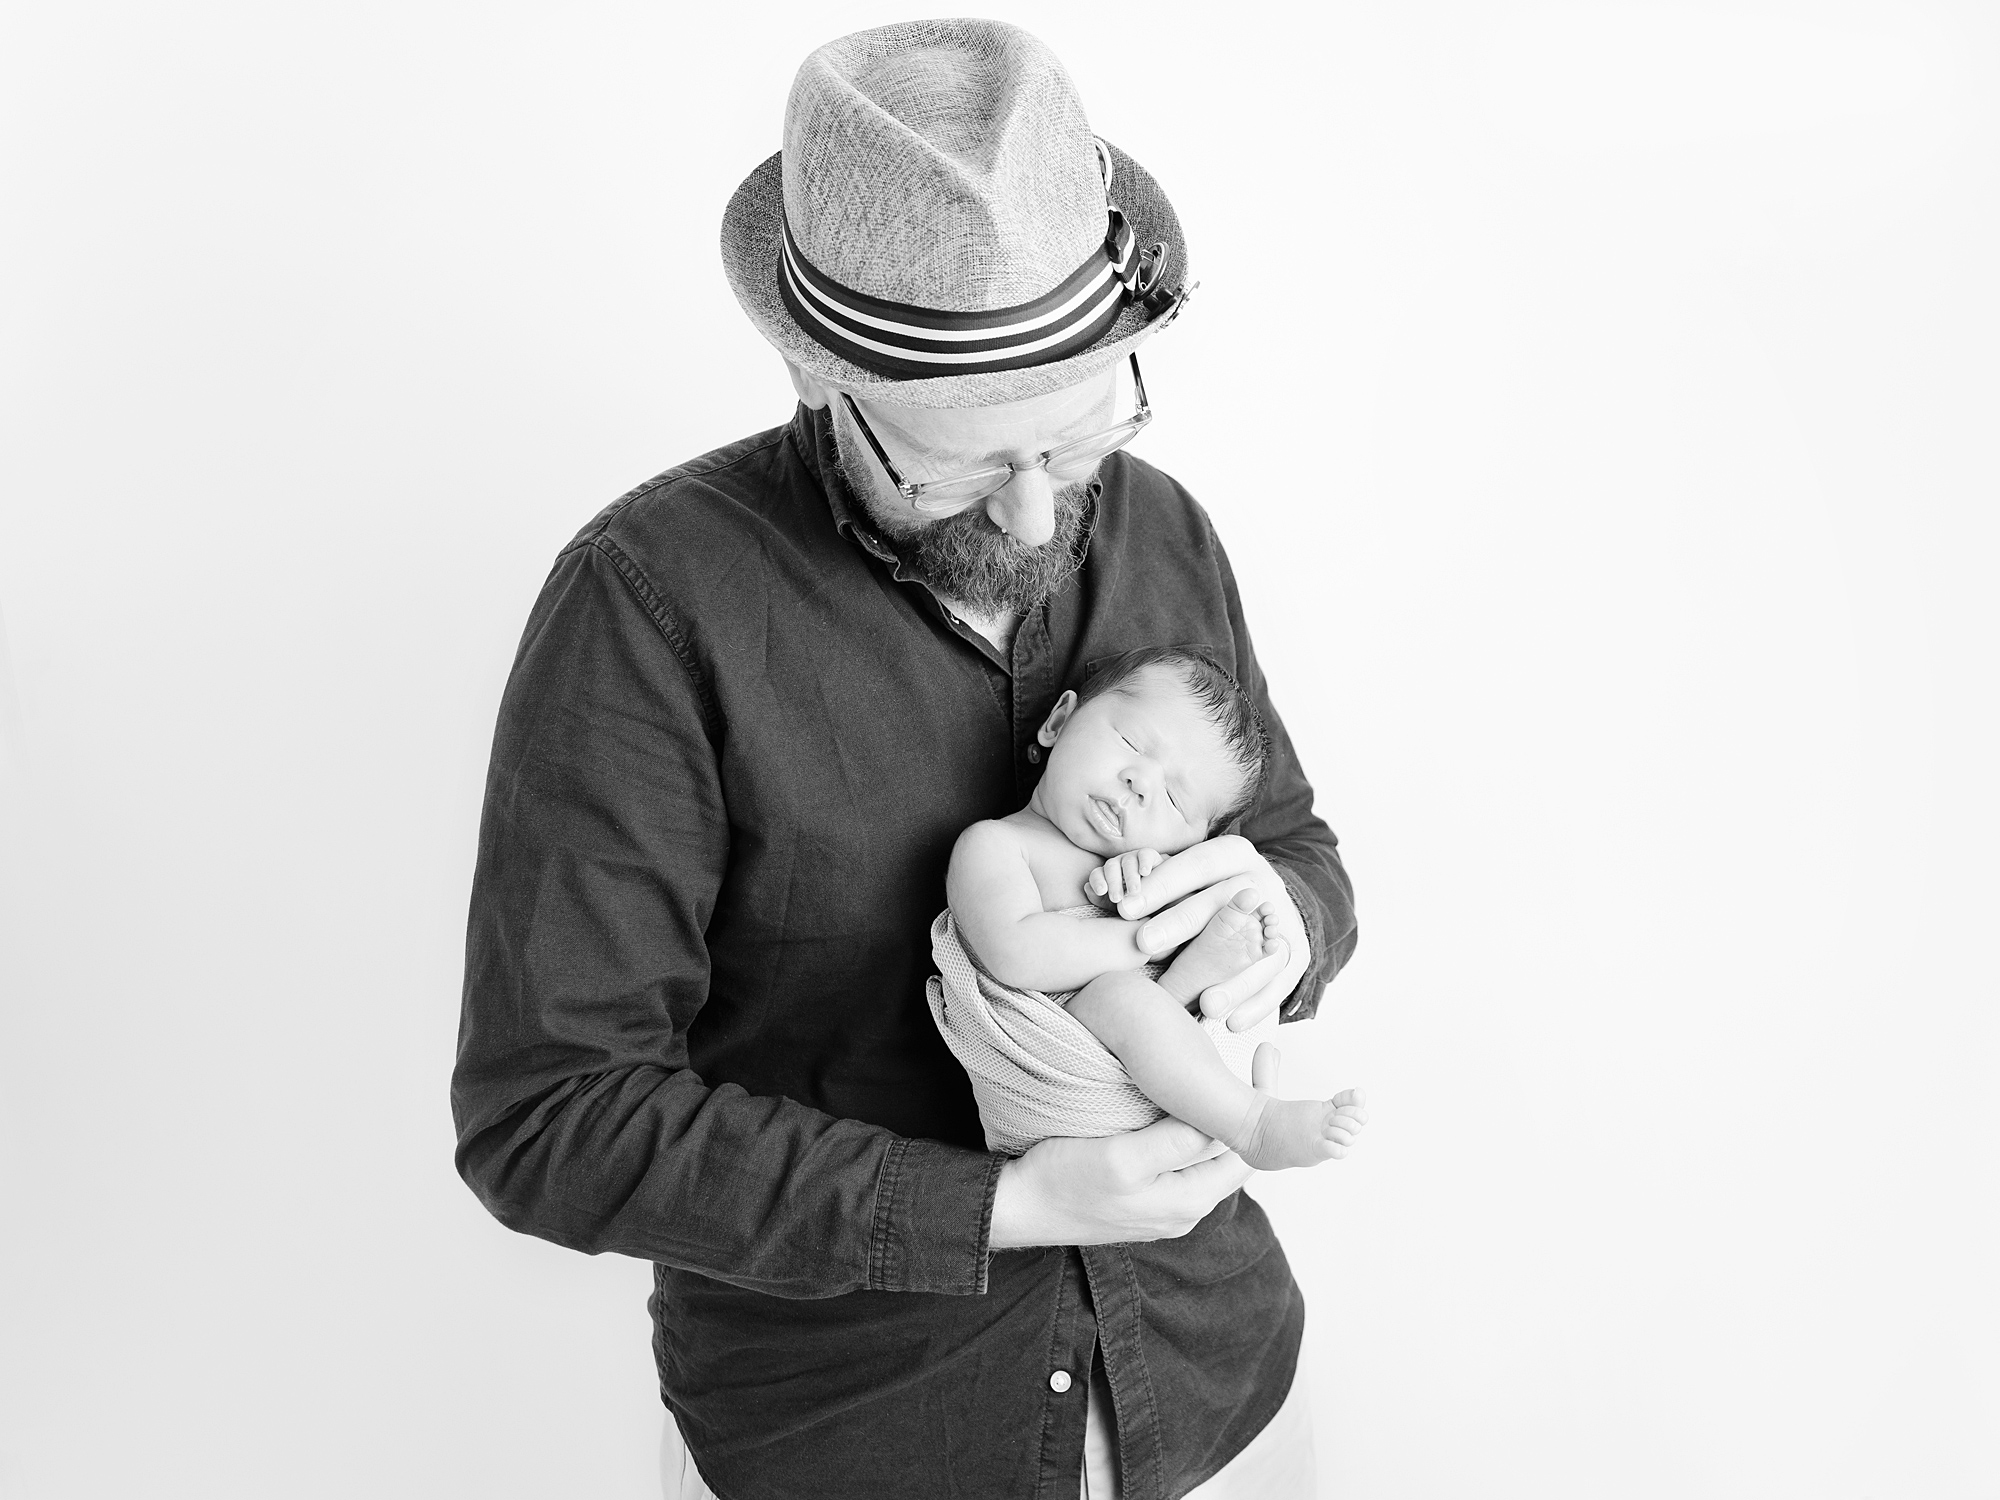 dad and baby newborn photography in edinburgh by Anilorak Photography